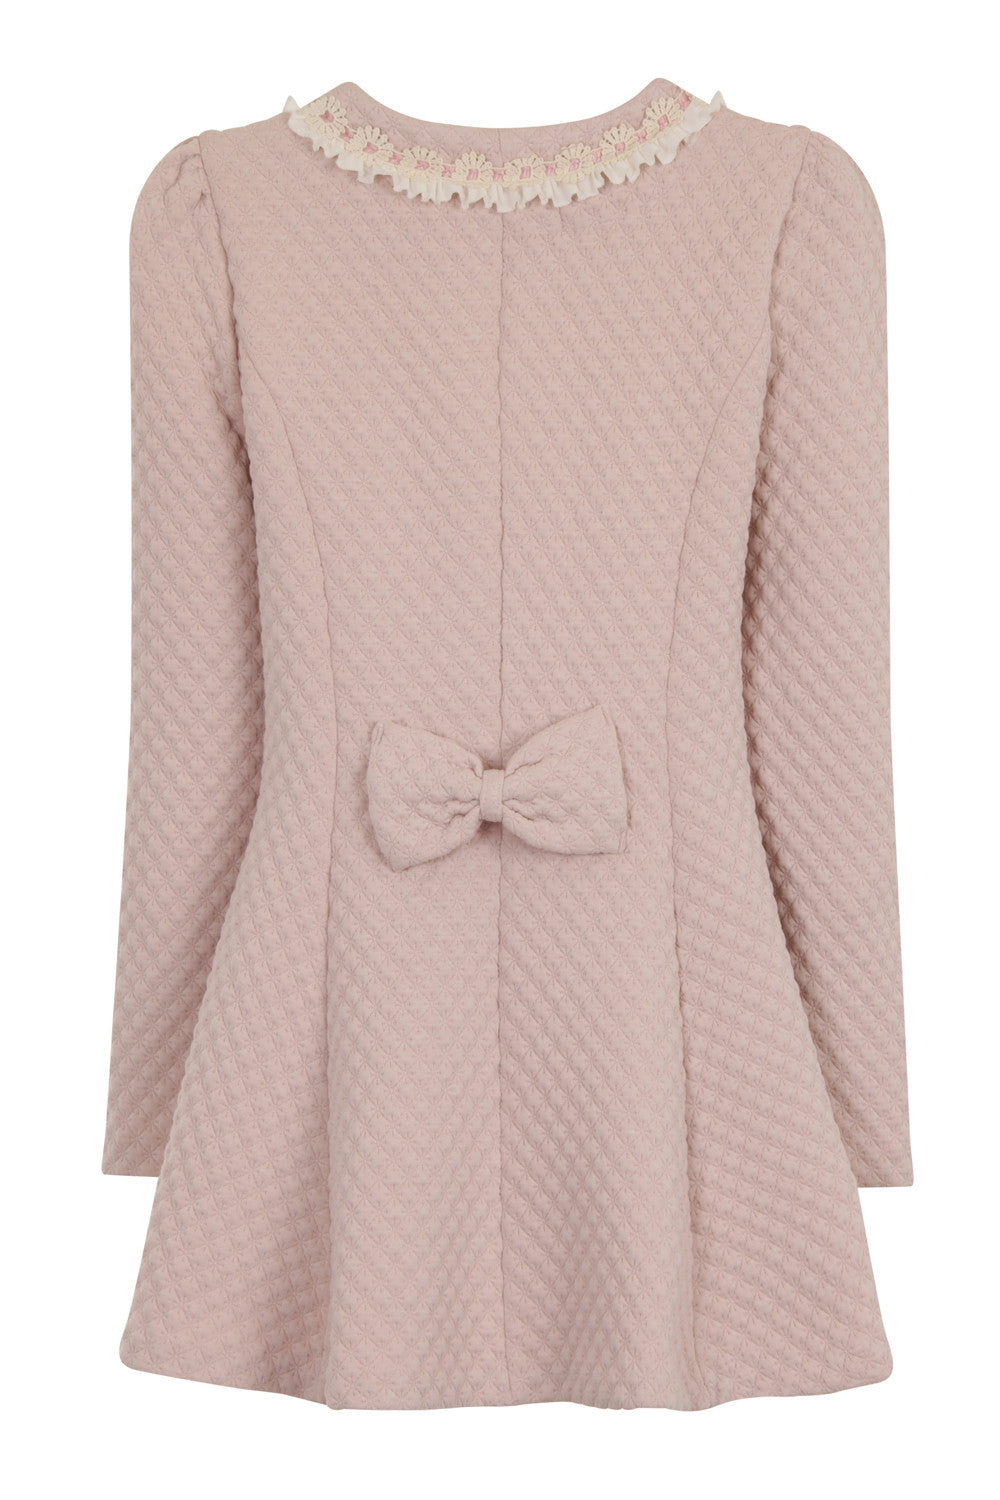 LACEY LINE LONG JACKET - PINK - Darccy & Soma London